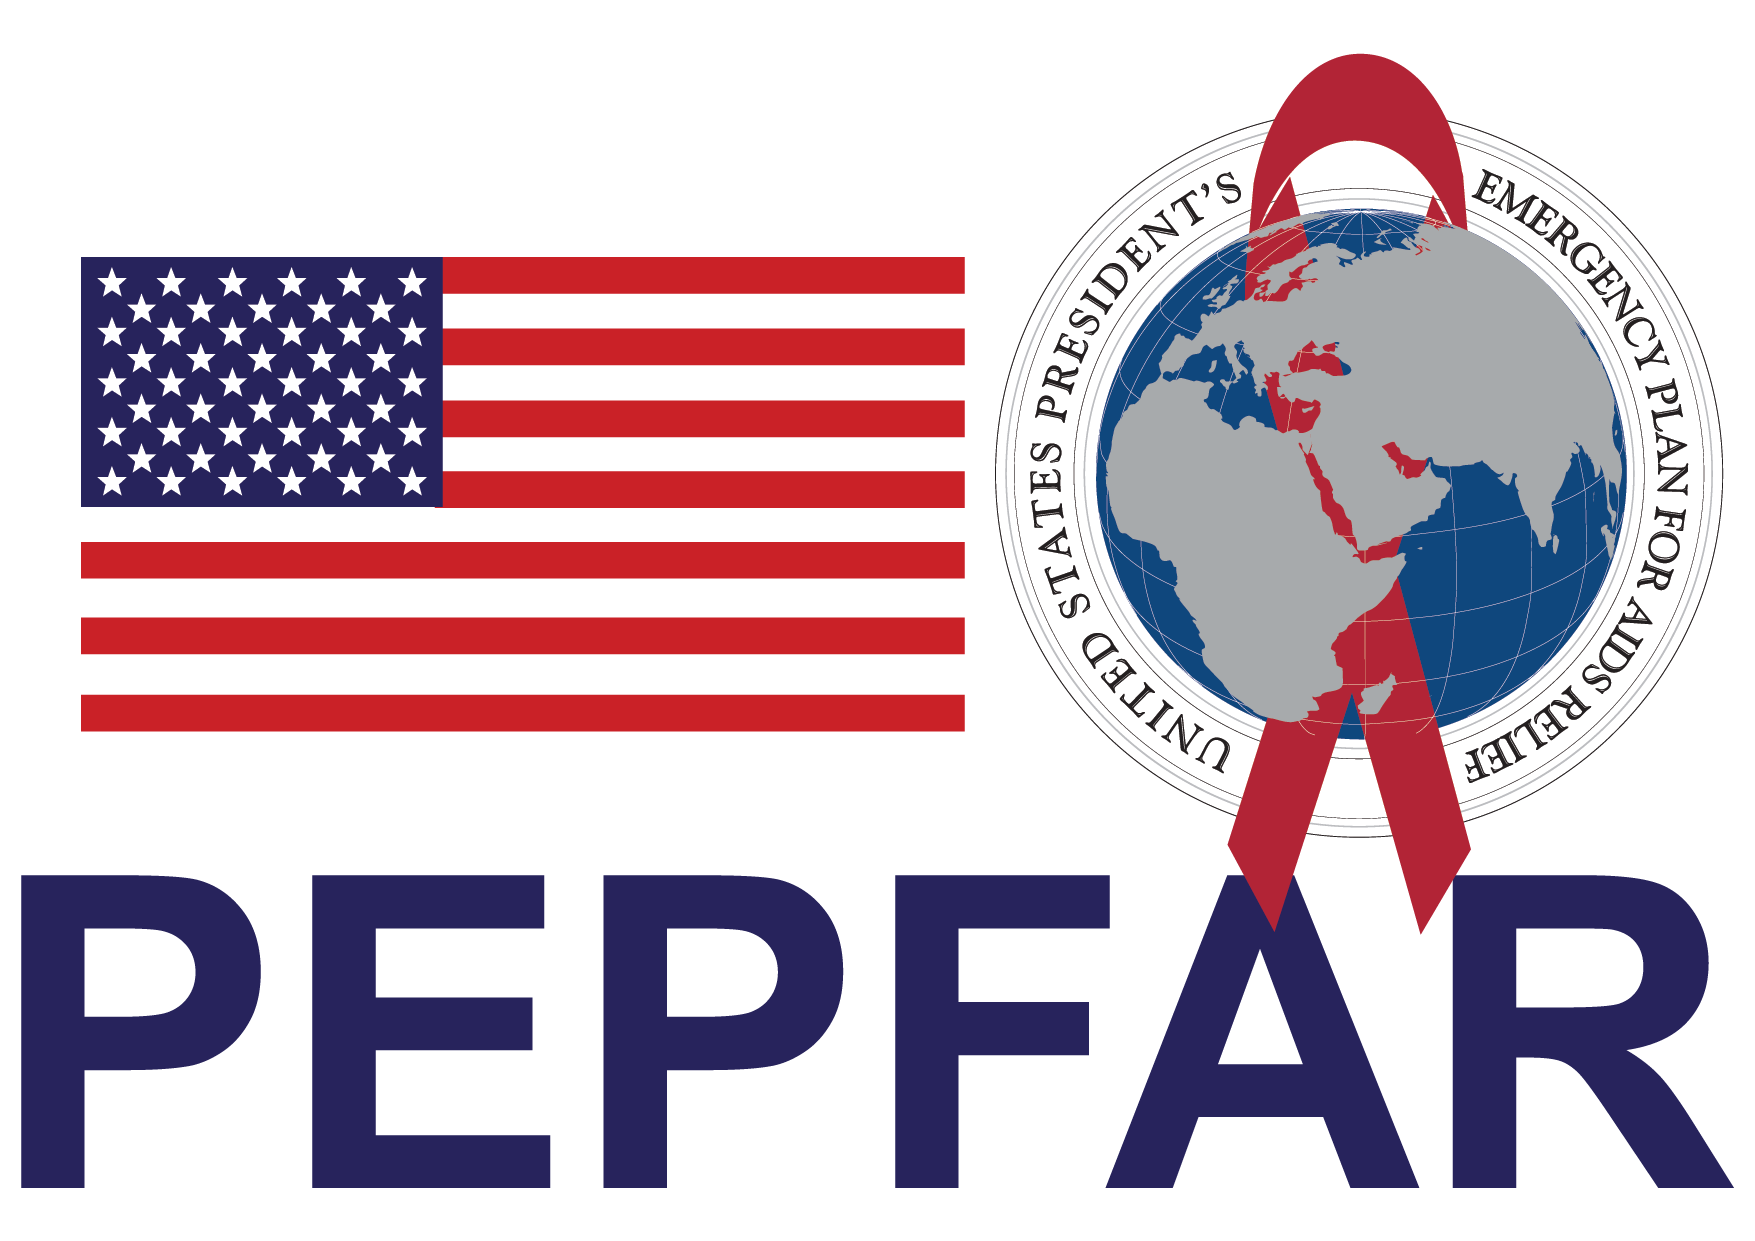 pepfar bruce version 190923-05